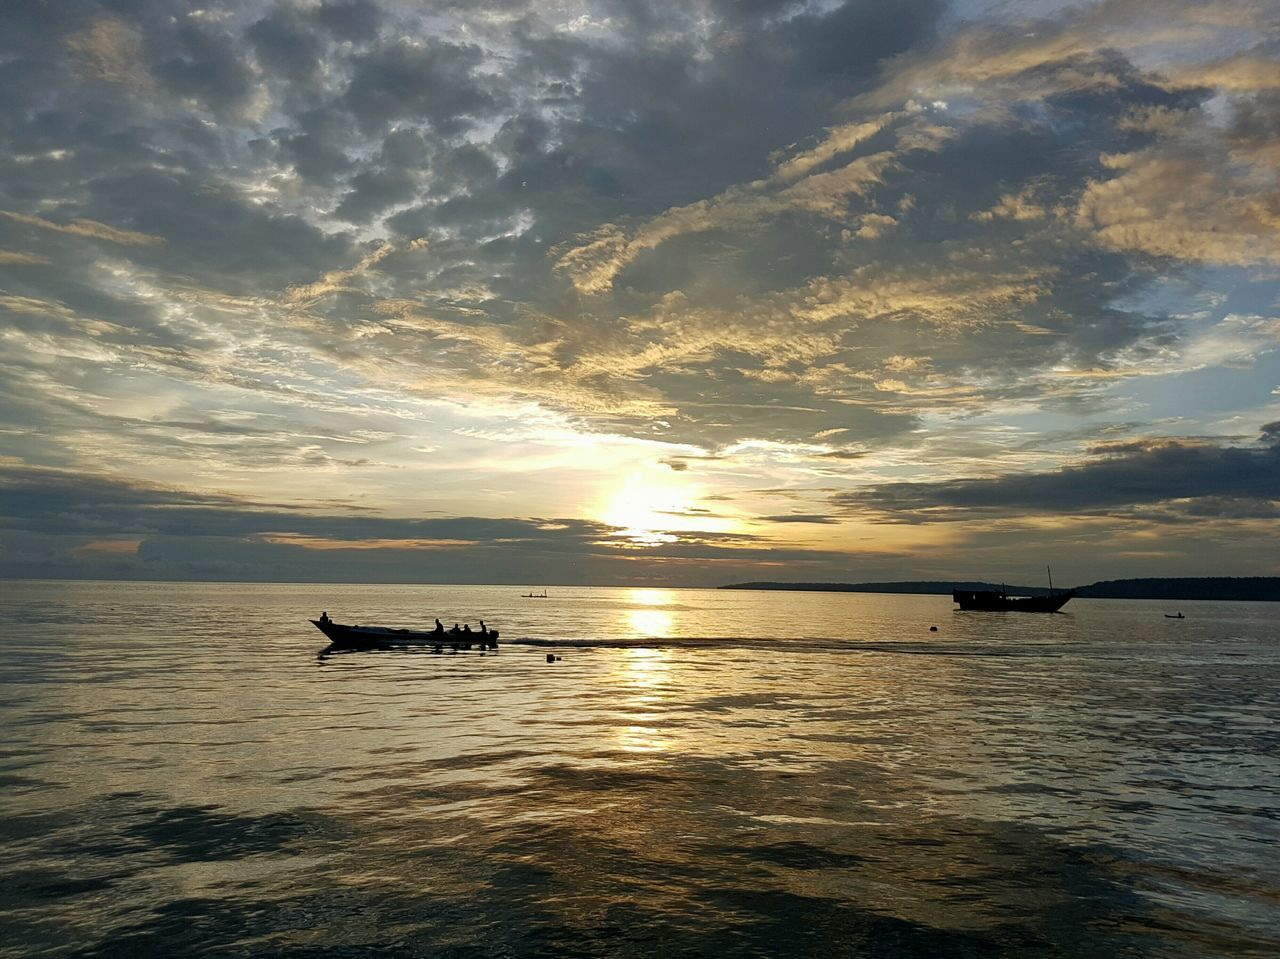 Nautical Vessel Transportation Water Boat Mode Of Transport Sunset Sea Scenics Calm Horizon Over Water Sky Ocean Tranquil Scene Waterfront Cloud - Sky Non-urban Scene Biak Papua Indonesia